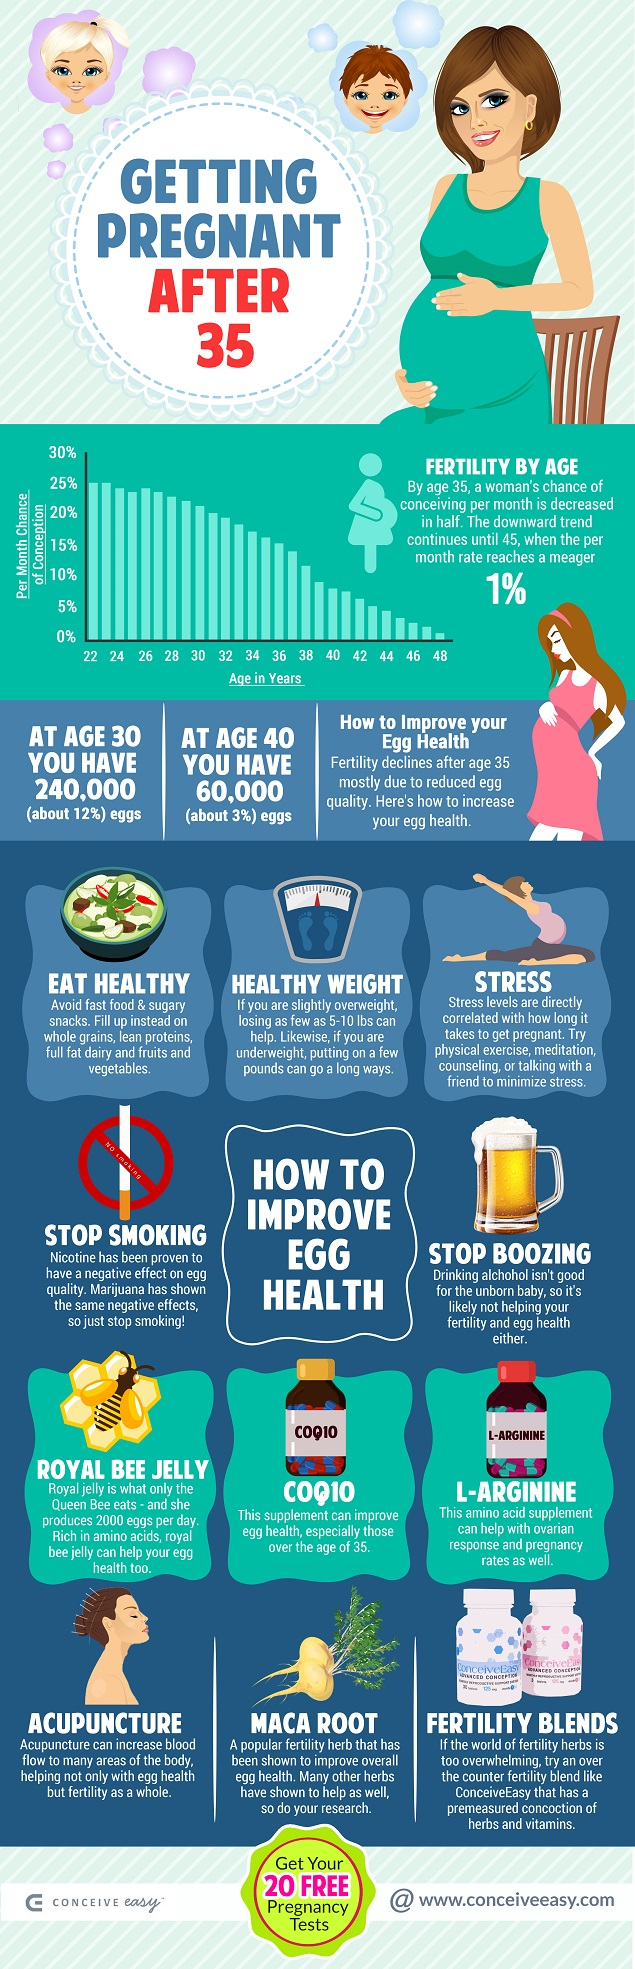 Getting Pregnant After 35 Infographic